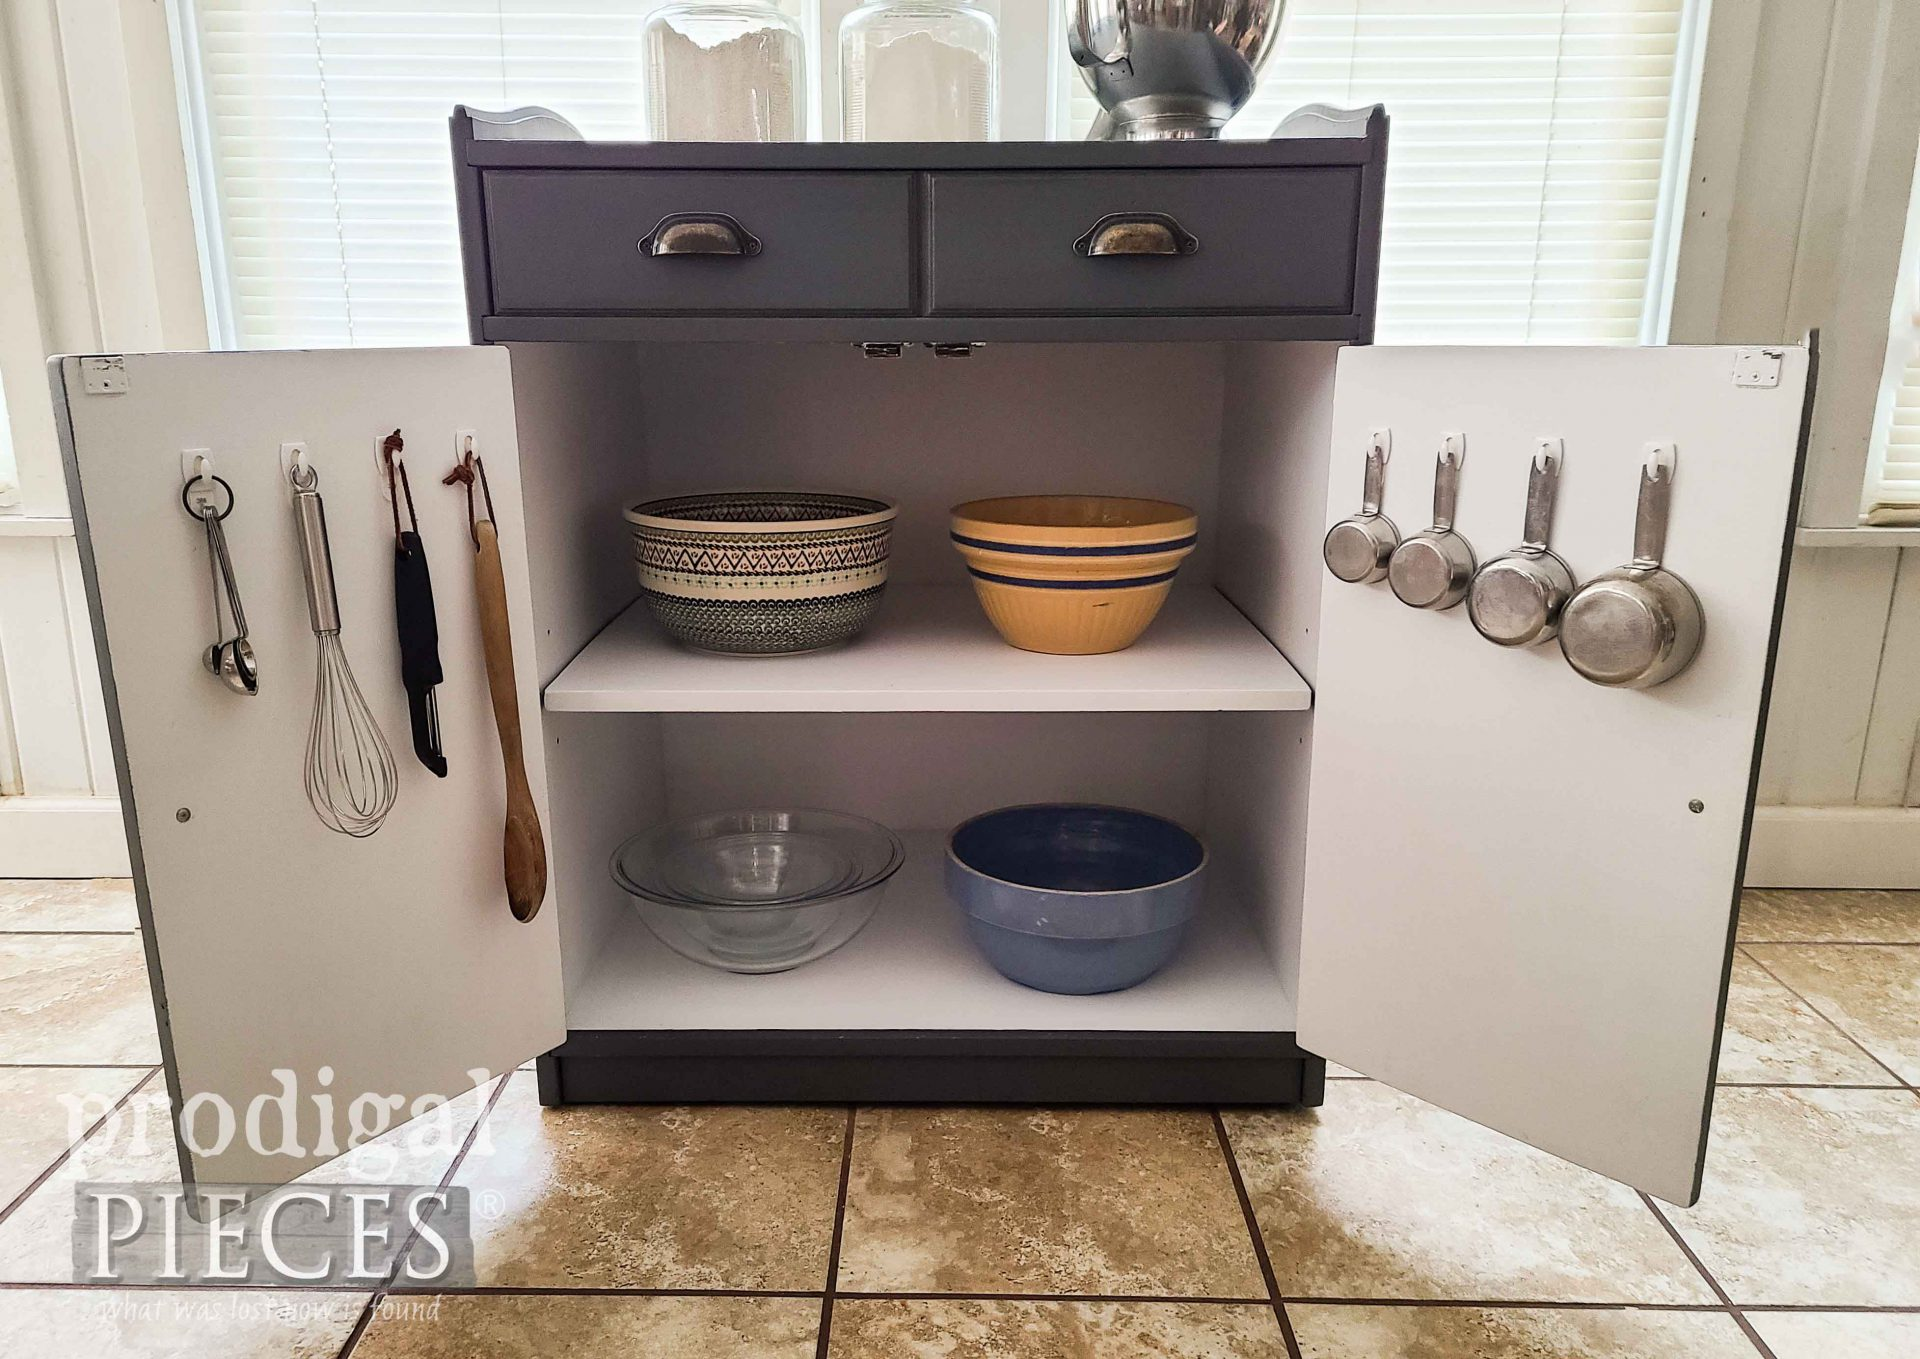 Inside Farmhouse Baking Cabinet with Storage by Larissa of Prodigal Pieces | prodigalpieces.com #prodigalpieces #kitchen #home #diy #storage #home #homedecor